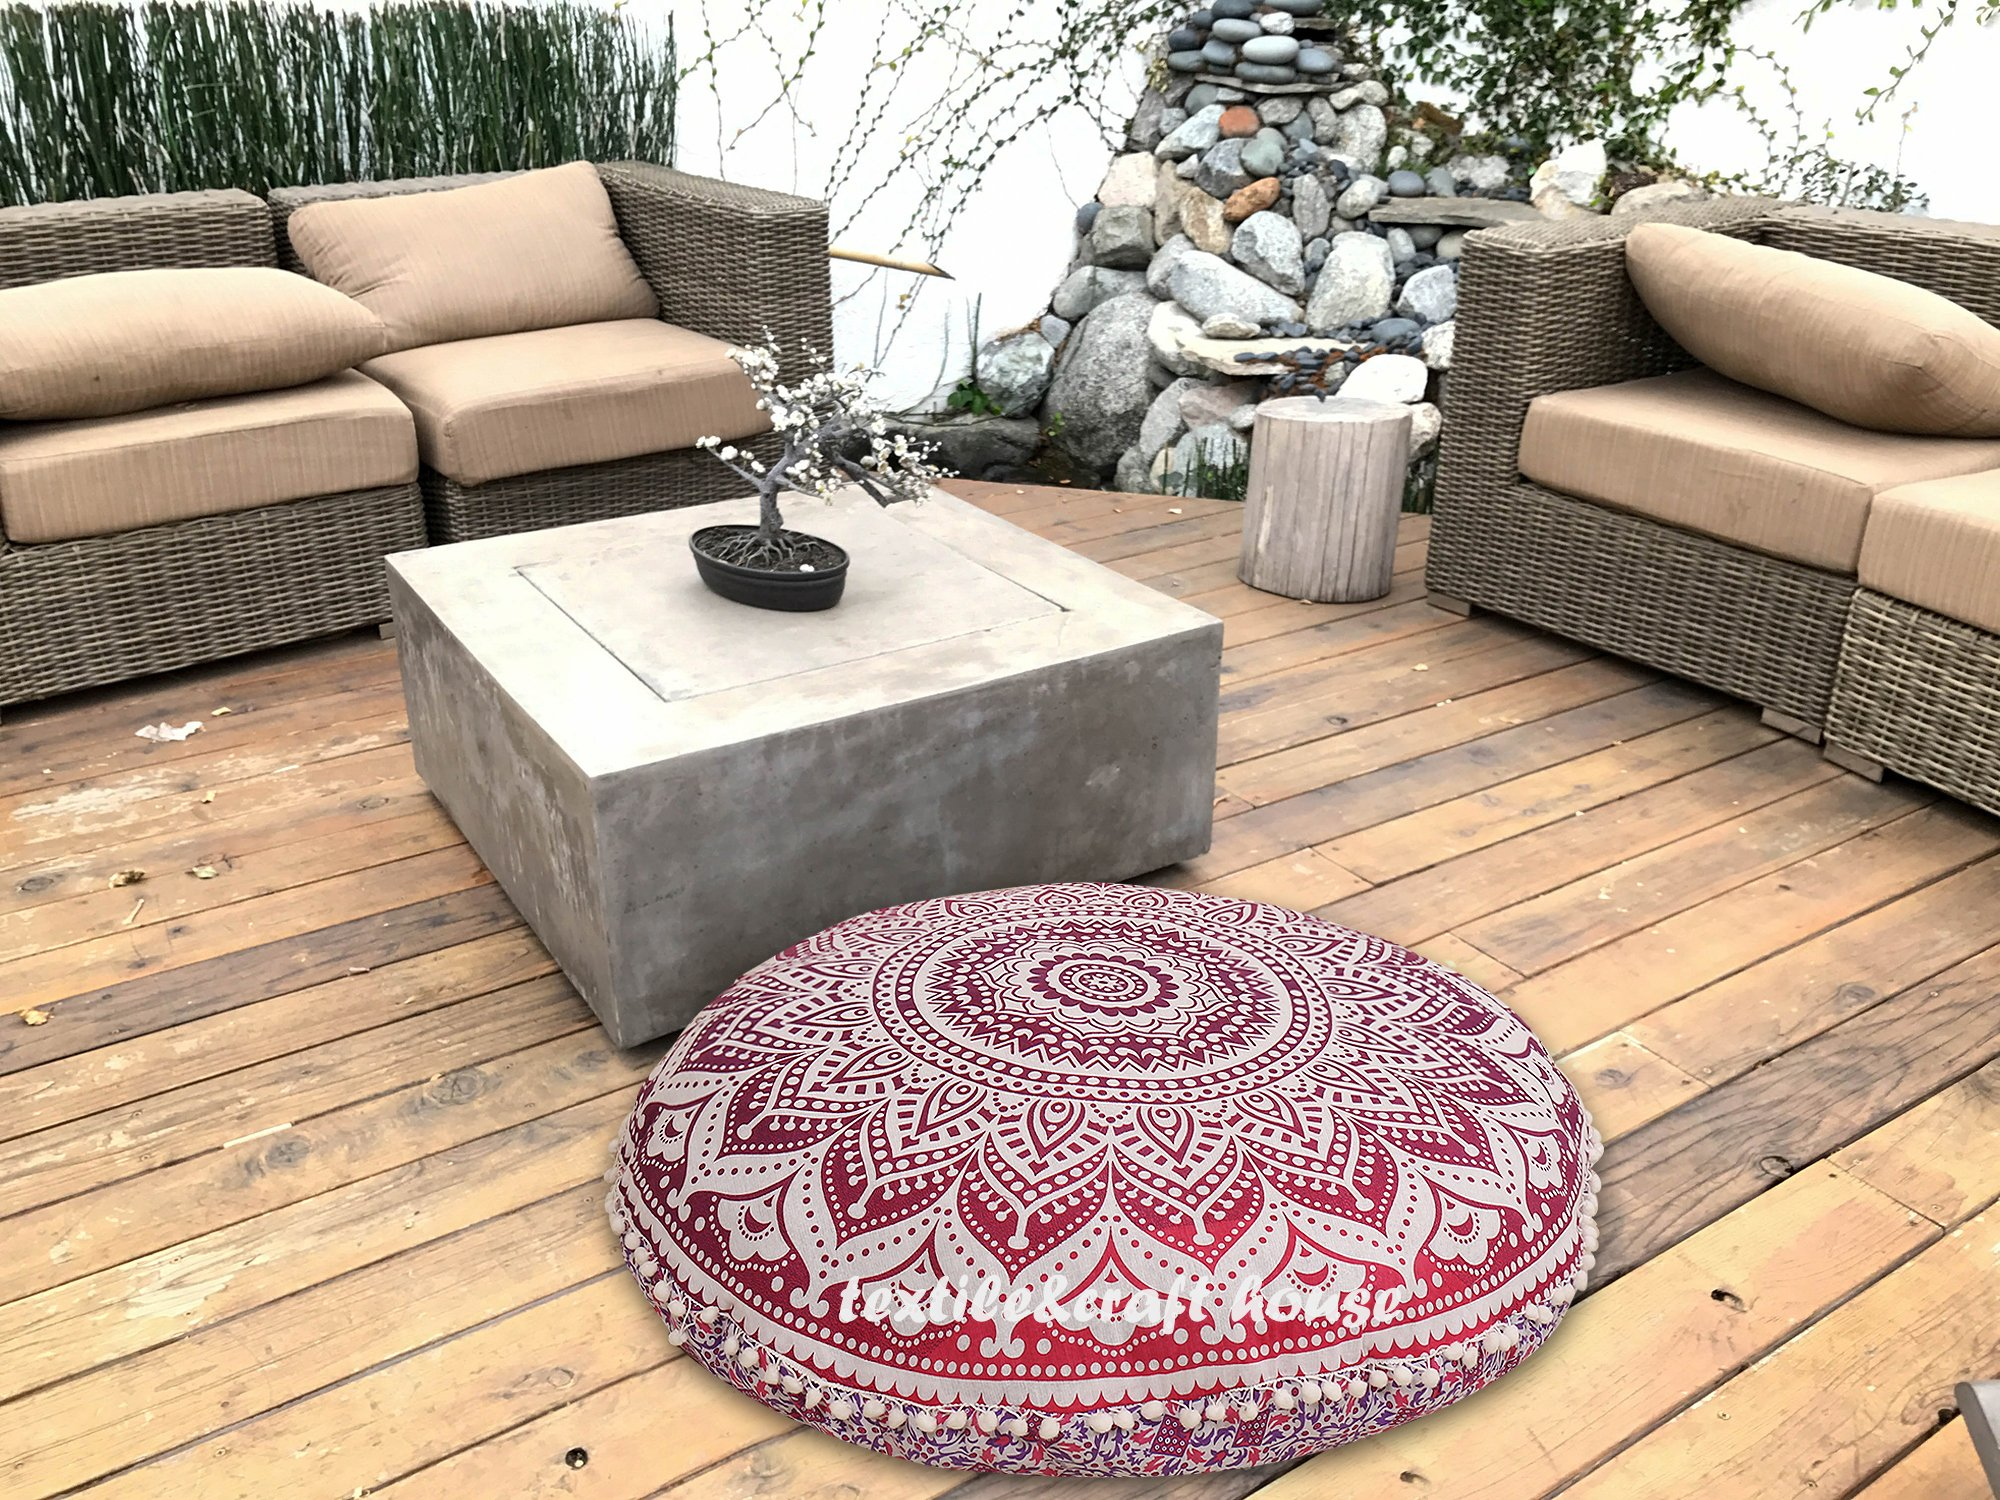 TEXTILE&CRAFT HOUSE Decorative Mandala Round Floor Pillow Cushion Cover Pouf Cover Indian Bohemian Ottoman Poufs Cover Pom Pom outdoor Cushion Cover (PINK) by TEXTILE&CRAFT HOUSE